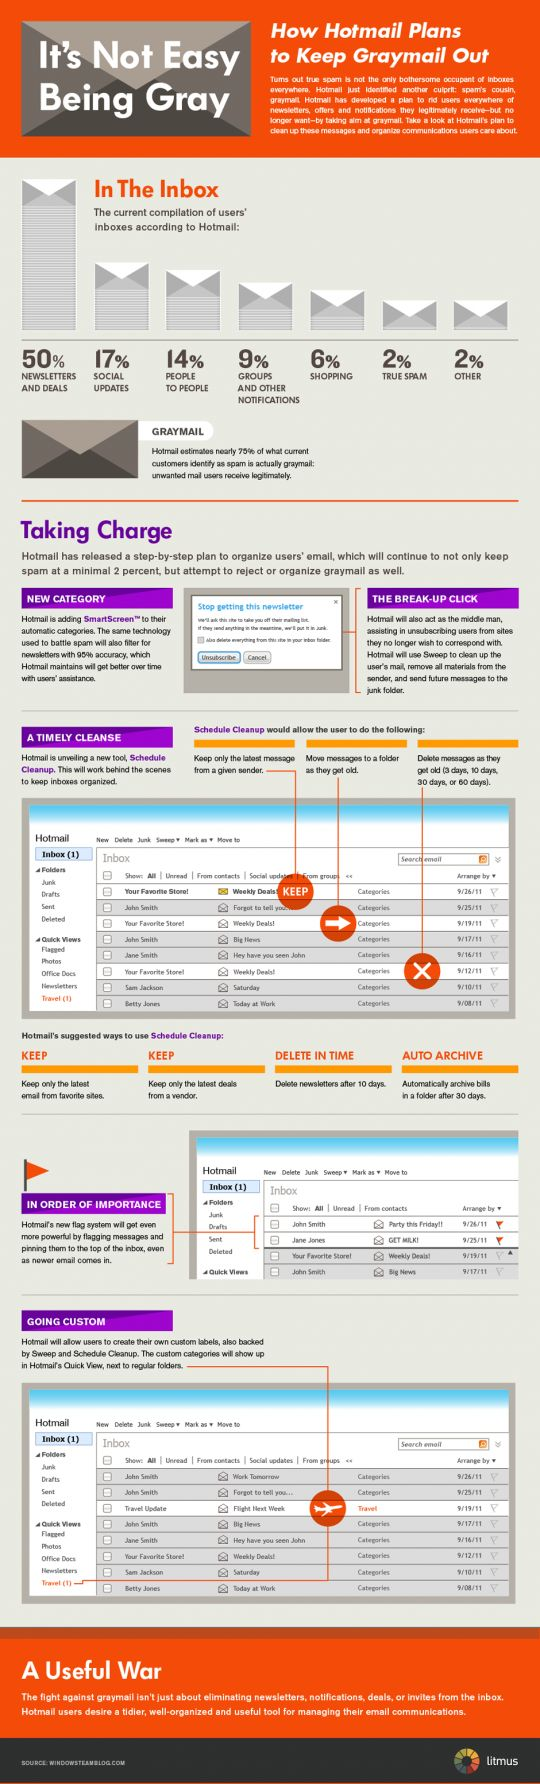 Find out about Hotmail's new Graymail features #email #marketing #infographic #graymail - by Bootcamp Media ( #Marketing #SEO #Infographics )